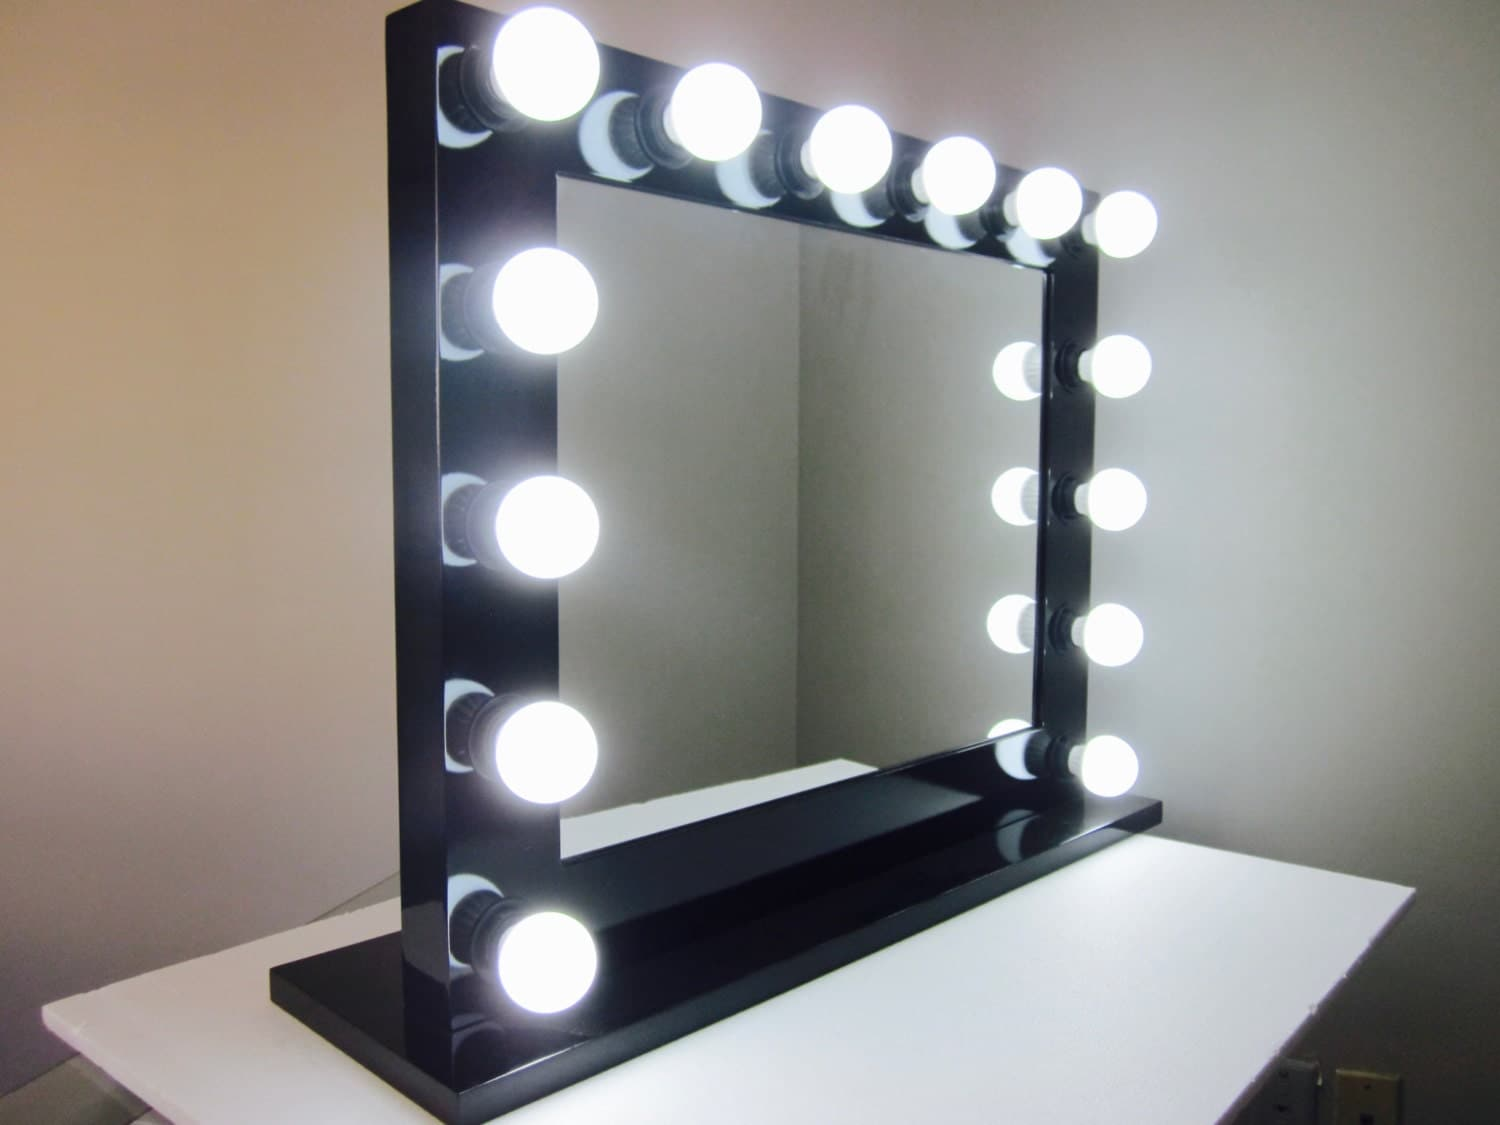 grand hollywood lighted vanity mirror w dimmer by impactvanity. Black Bedroom Furniture Sets. Home Design Ideas